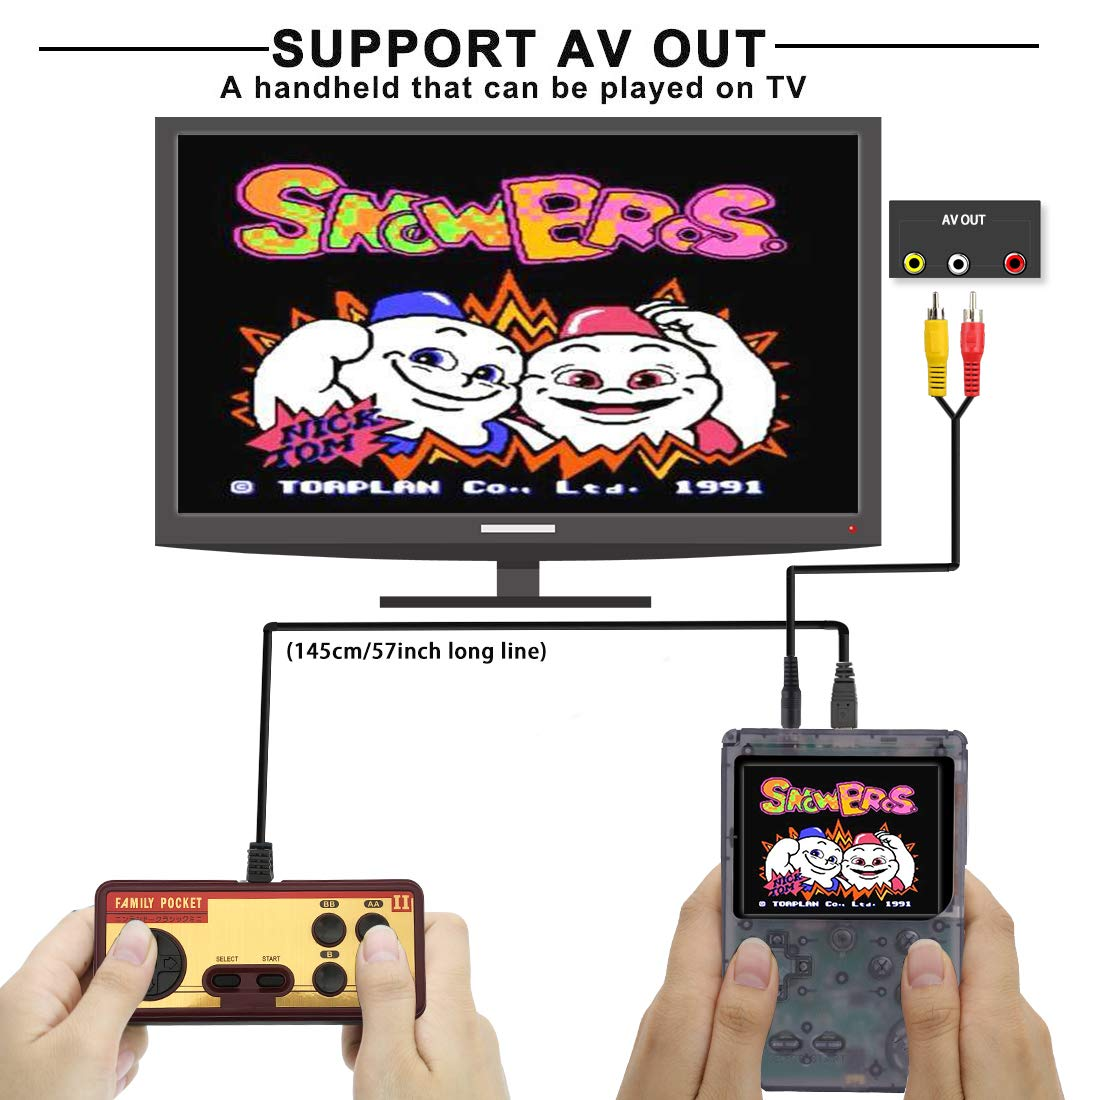 AKTOUGST Handheld Game Console, Retro Game Console 400 Classic Game FC System Video 3 Inch with Headphone Portable Mini Extra Controller Support TV 2 Player,Gift for Child Adult, (Transparent Black) by AKTOUGST (Image #2)